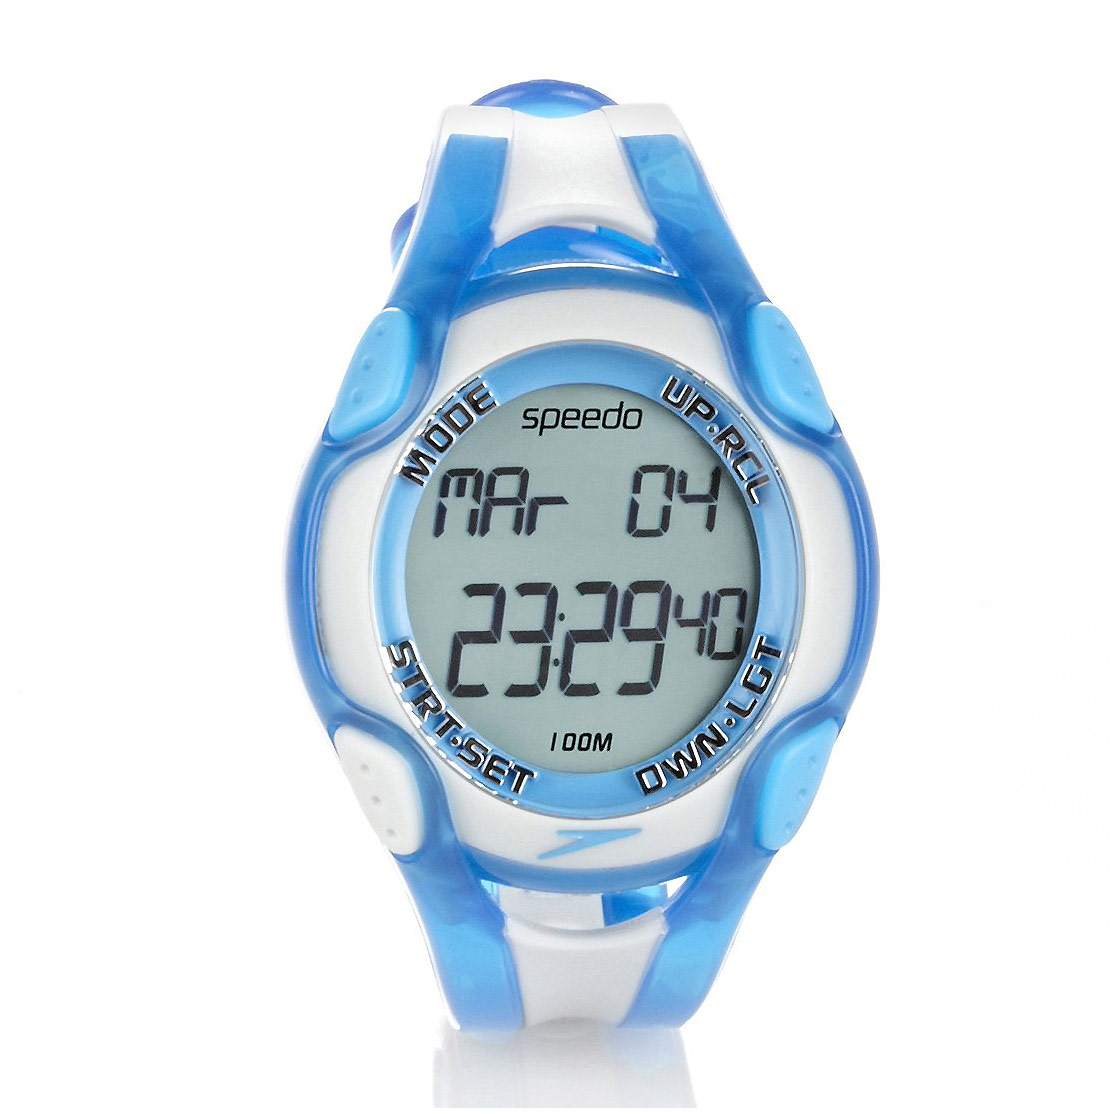 Orologio da nuoto speedo aquacoach watch blu bianco deporvillage - Orologio per piscina ...